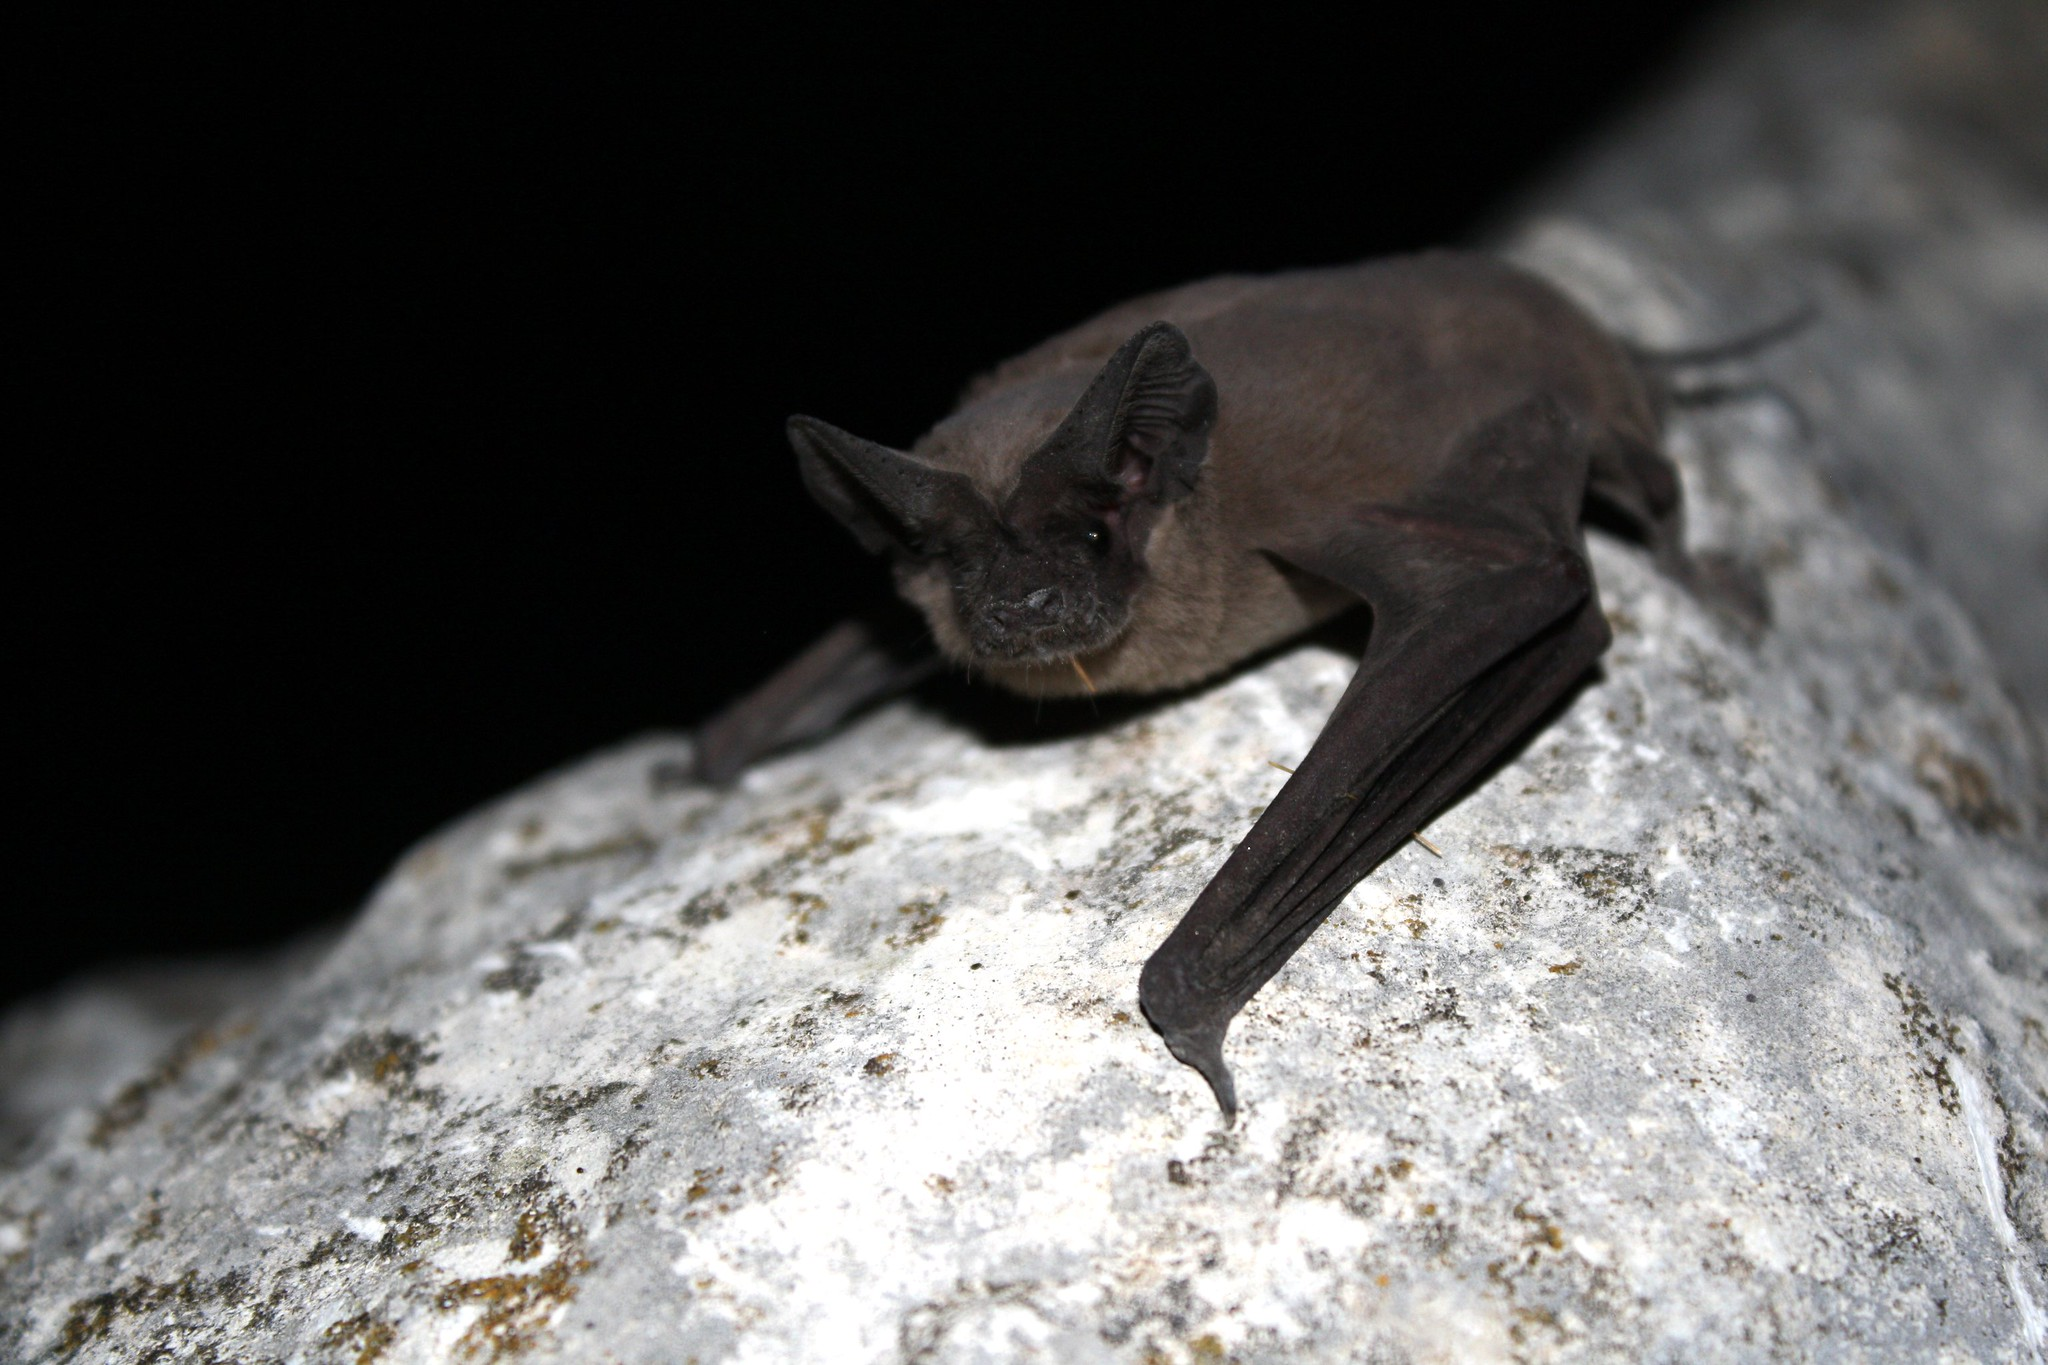 Mexican free-tailed bat (Tadaria braziliensis)